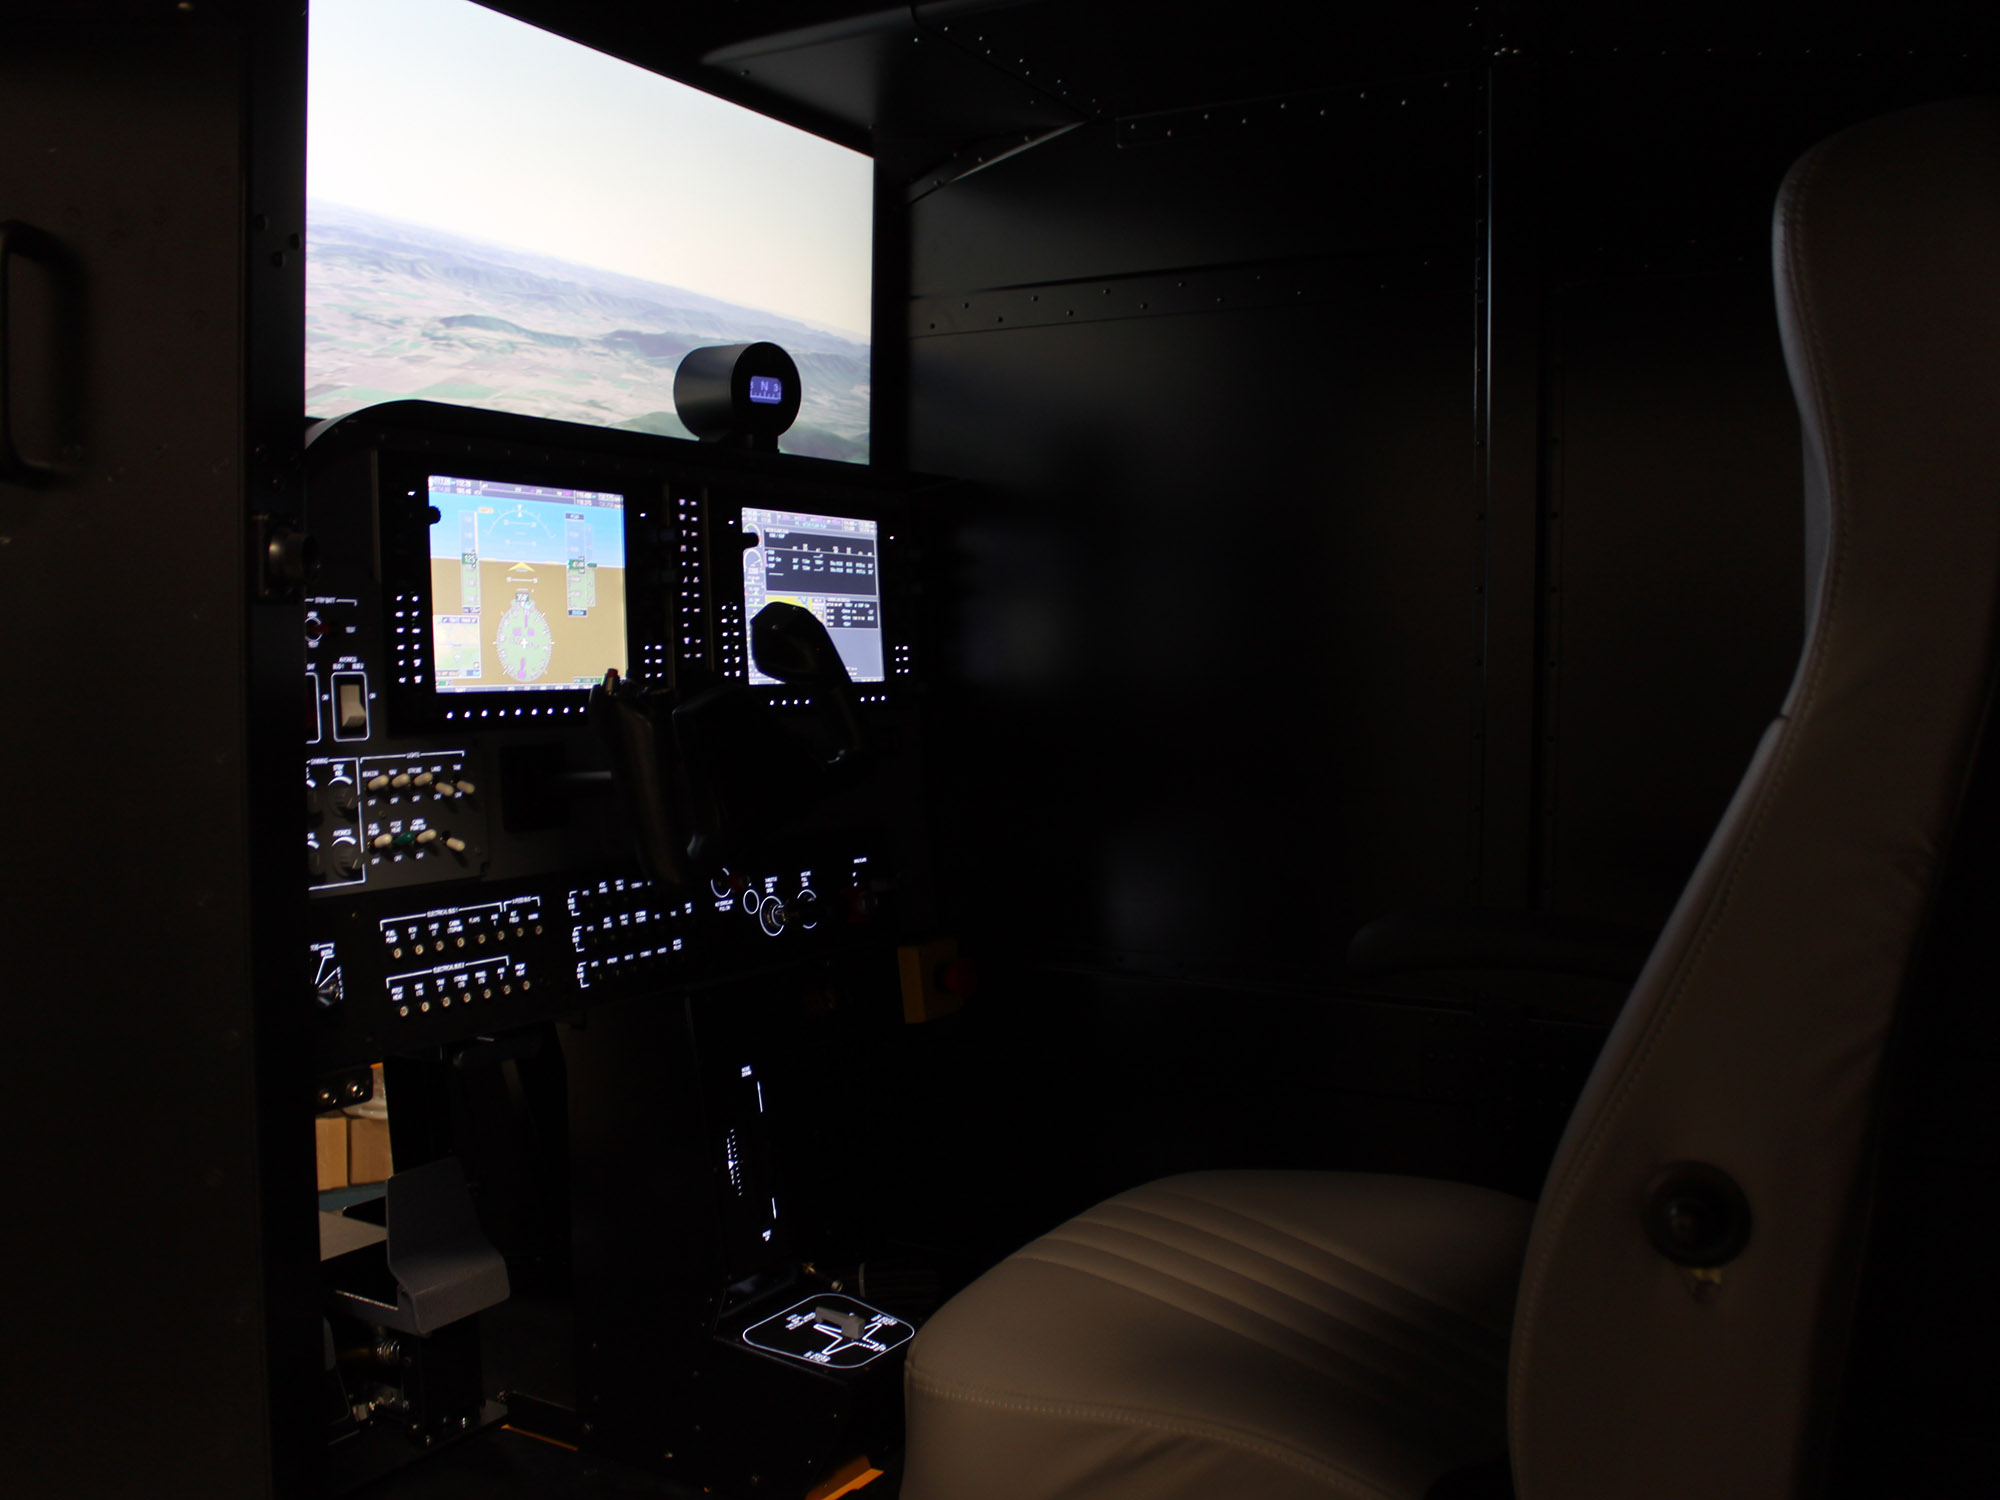 GAT-III General Aviation and Spatial Disorientation Trainer